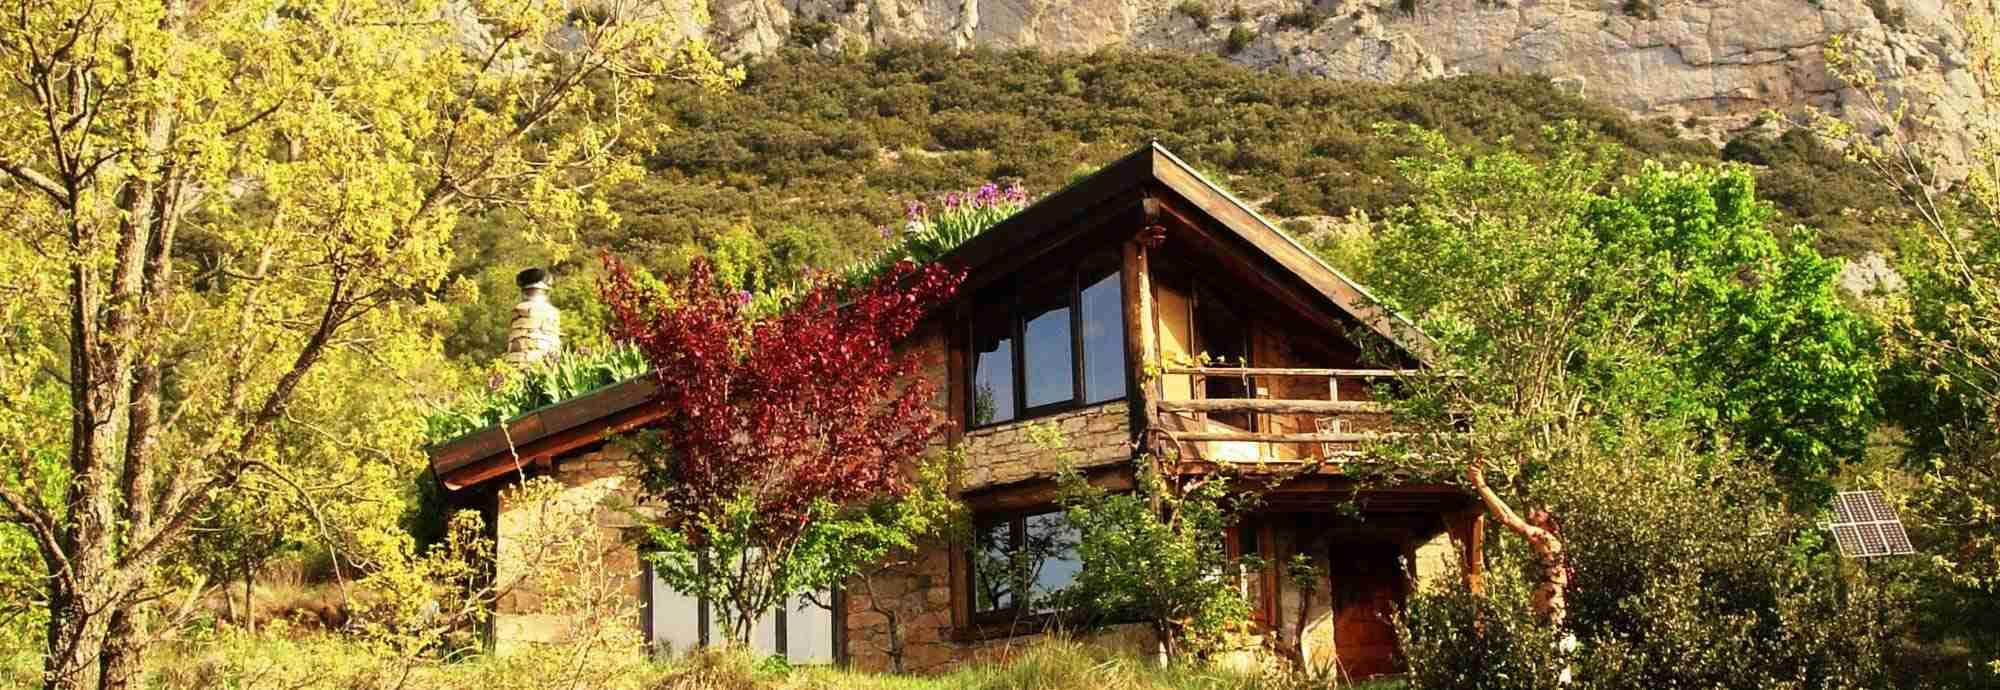 Eco holiday mountain retreat in Pyrenees, Catalonia, Spain